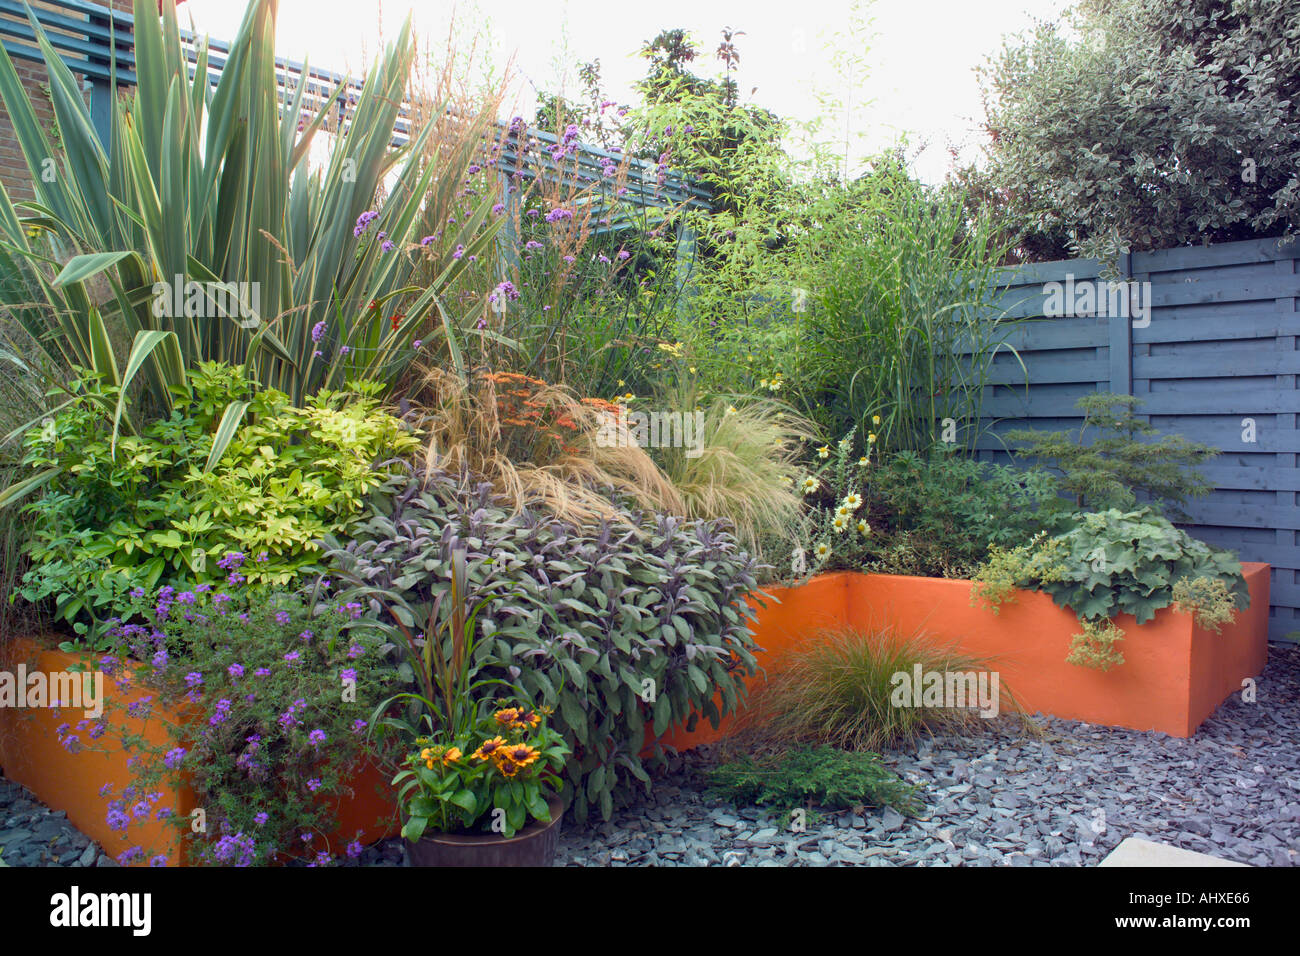 Small Town Garden With Good Structure Colour And Planting Raised Beds  Decking Painted Walls